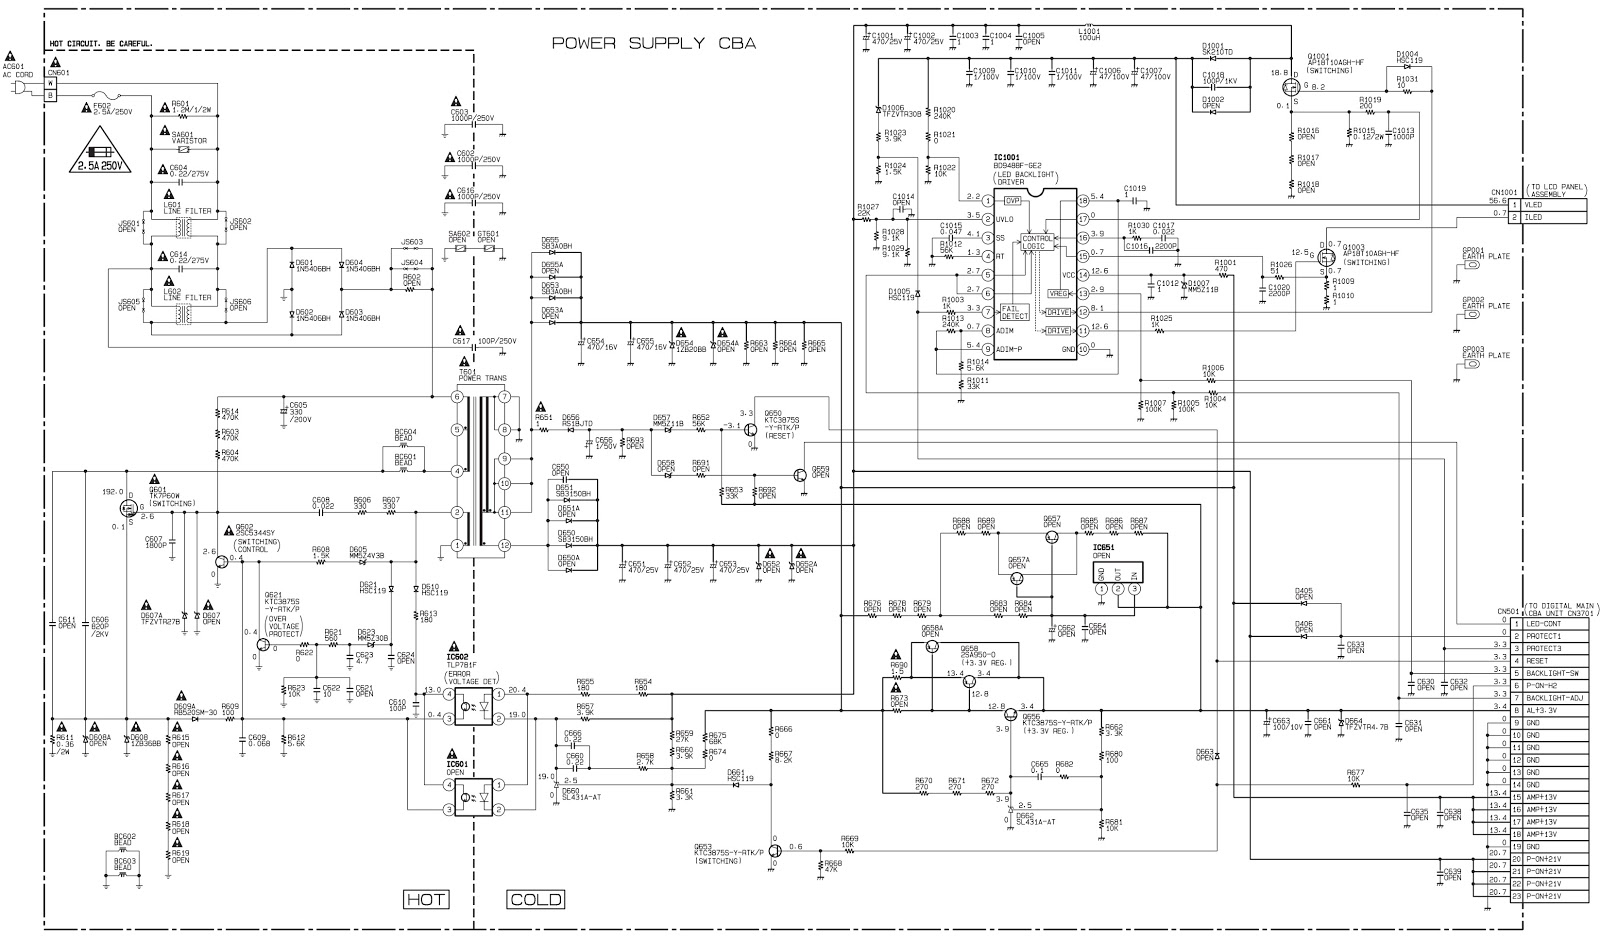 Magnavox Tv Schematic Diagram | #1 Wiring Diagram Source on